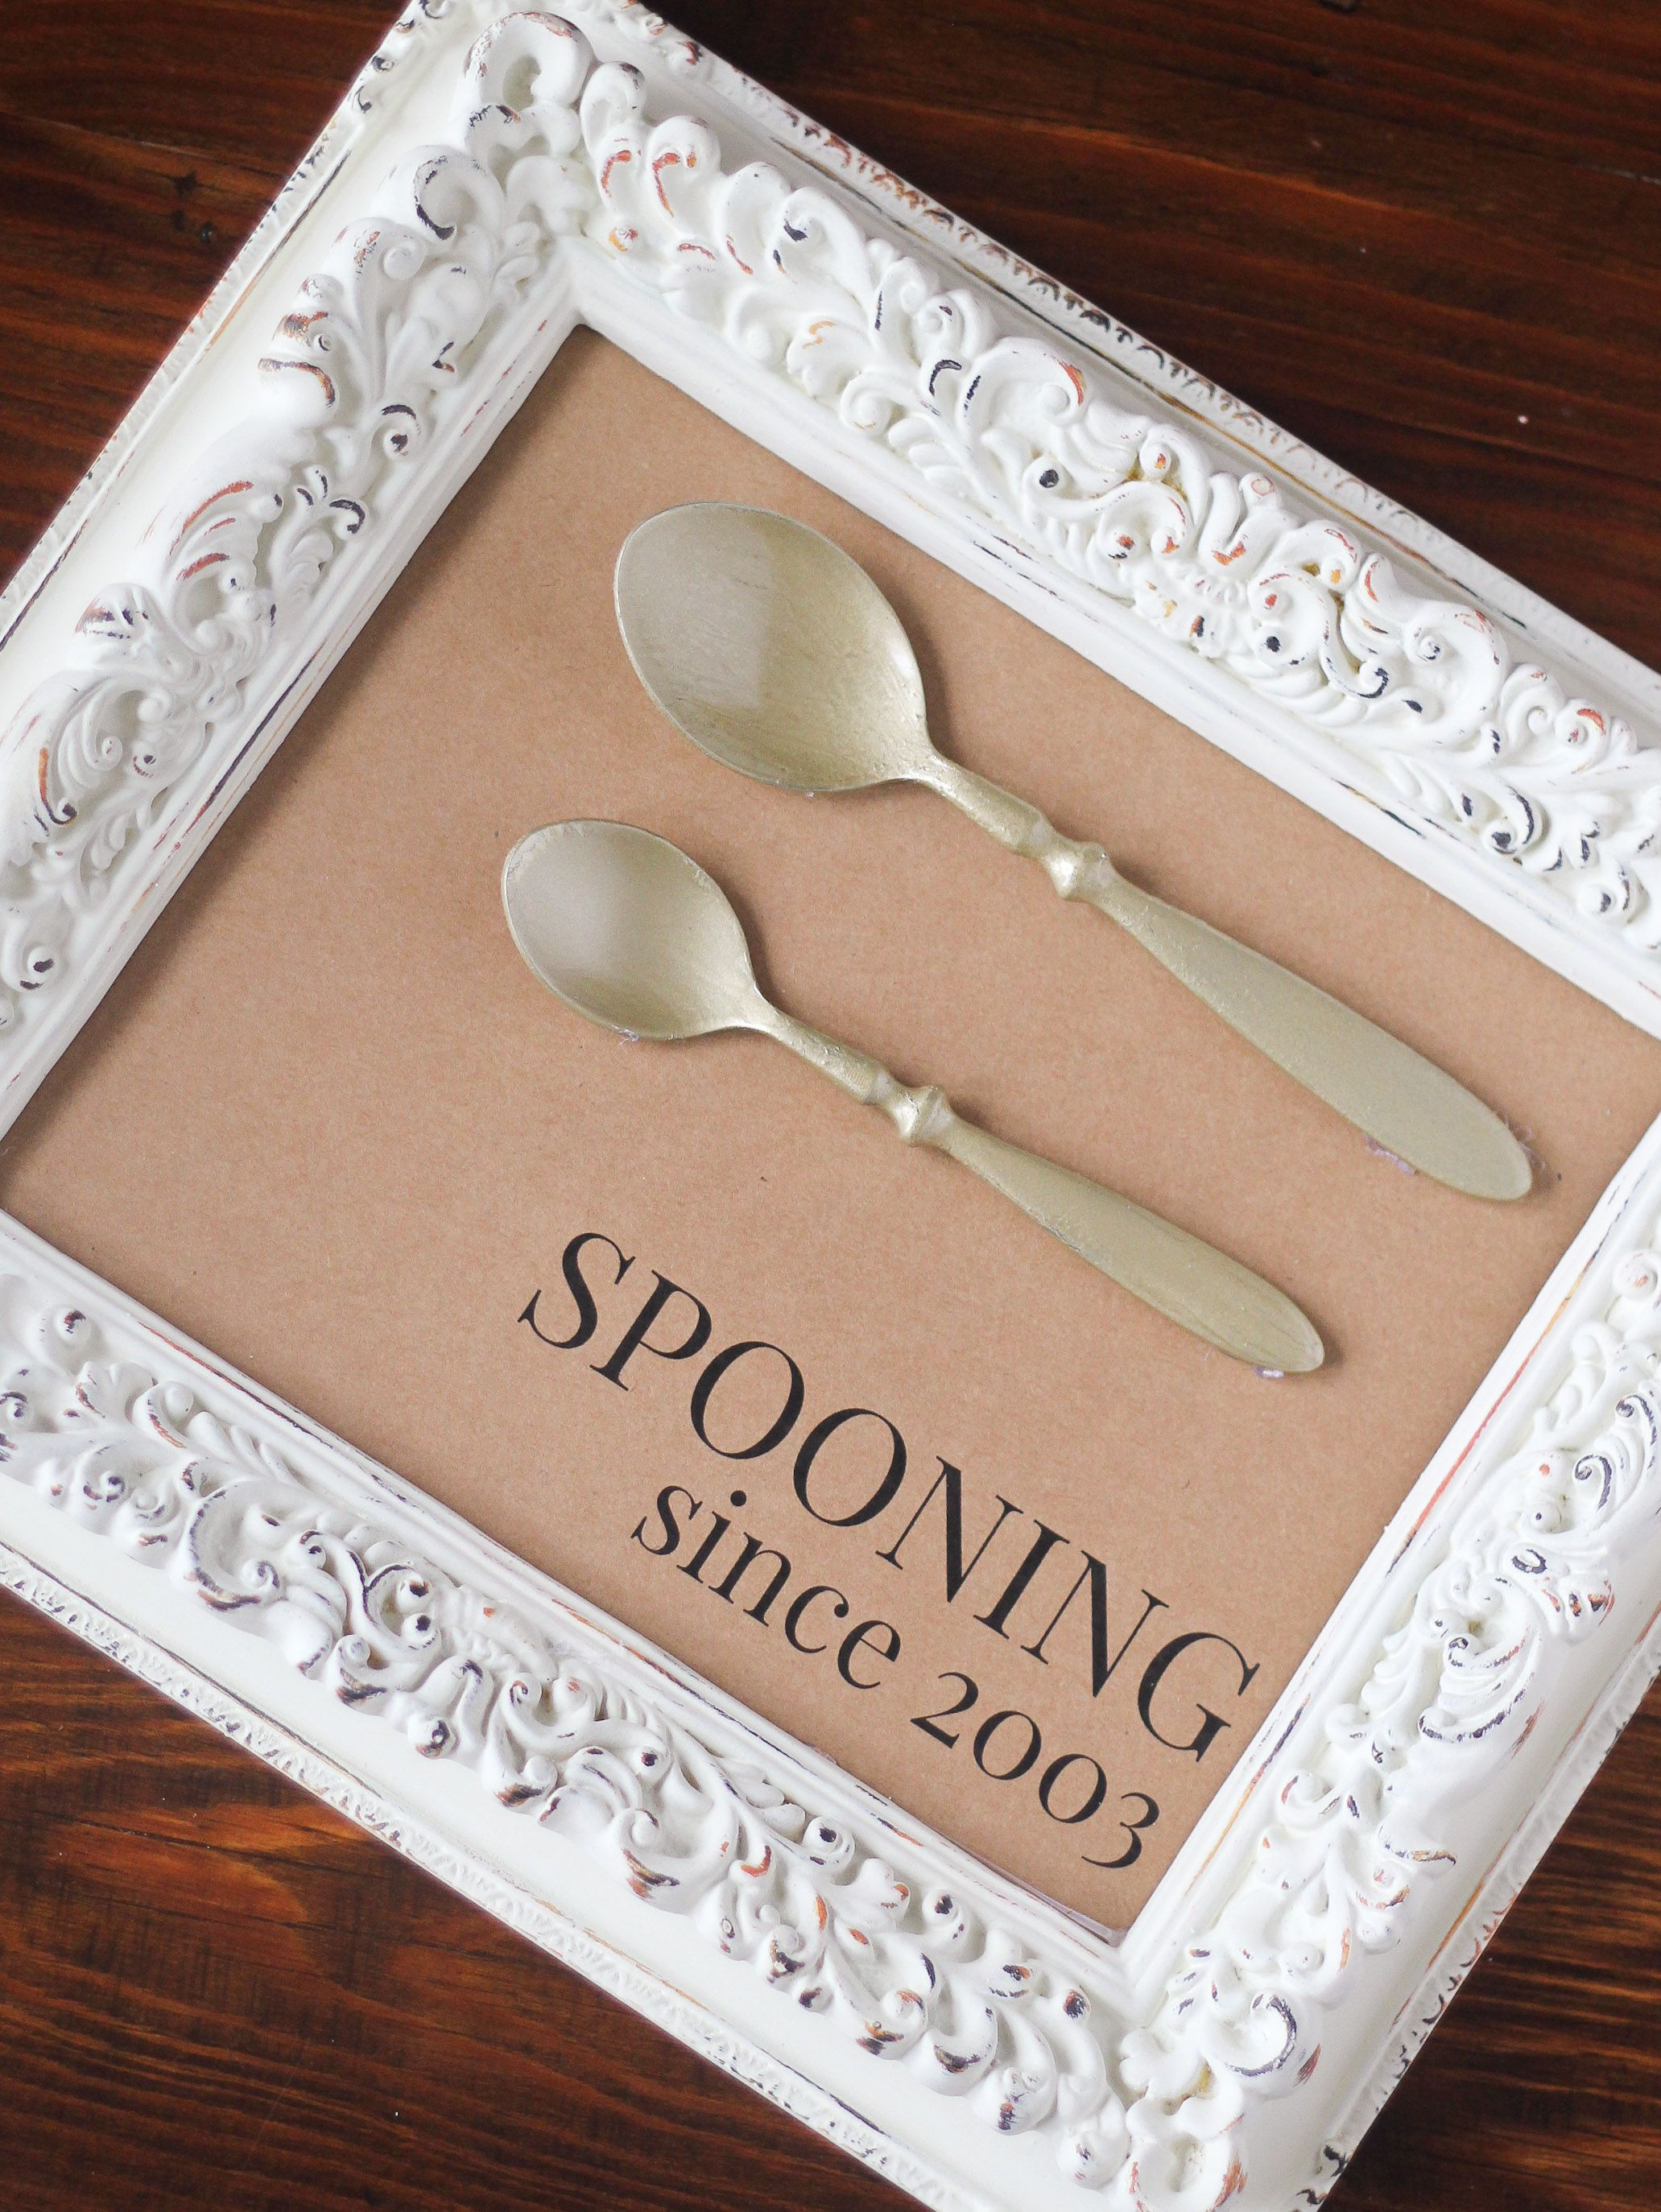 This Spooning Since Frame is a simple and inexpensive DIY